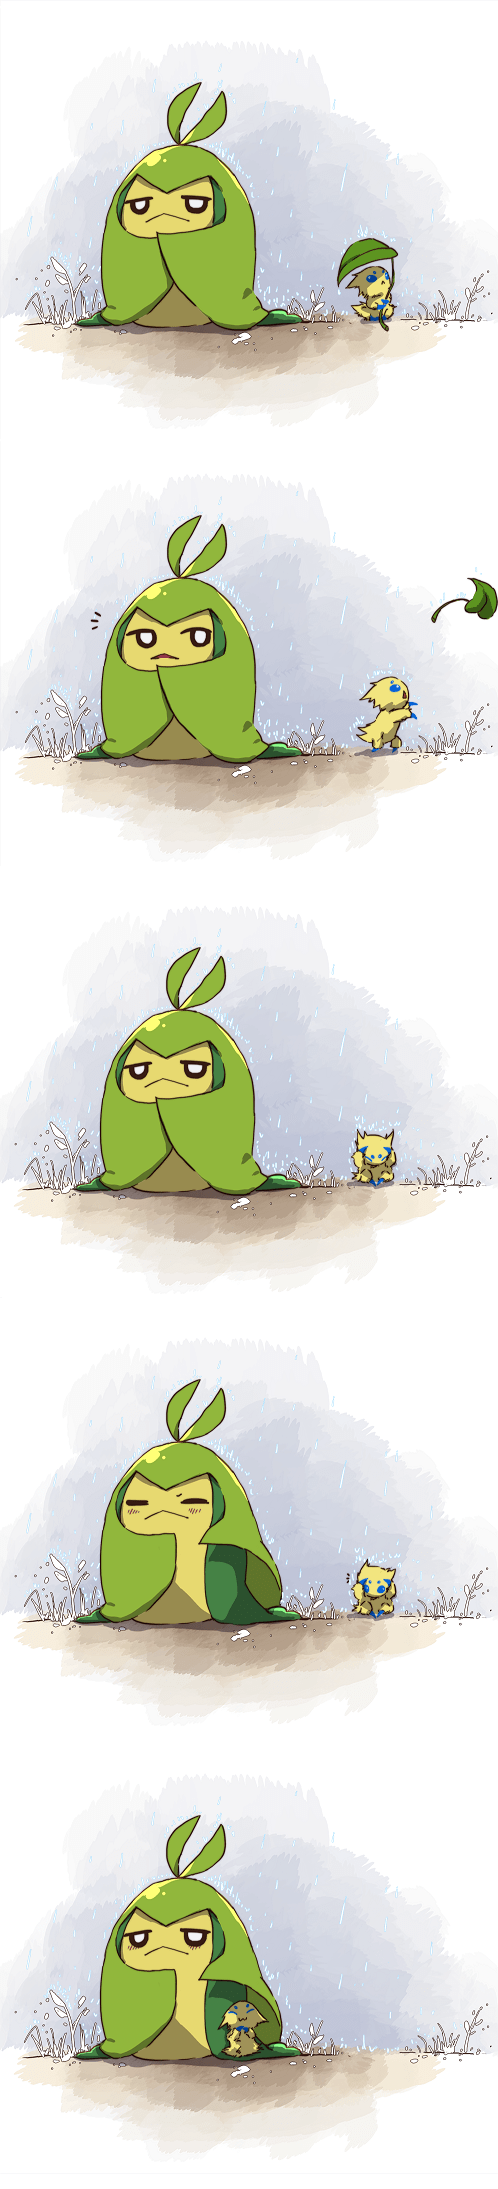 Pokémon art comics dawww joltik swadloon